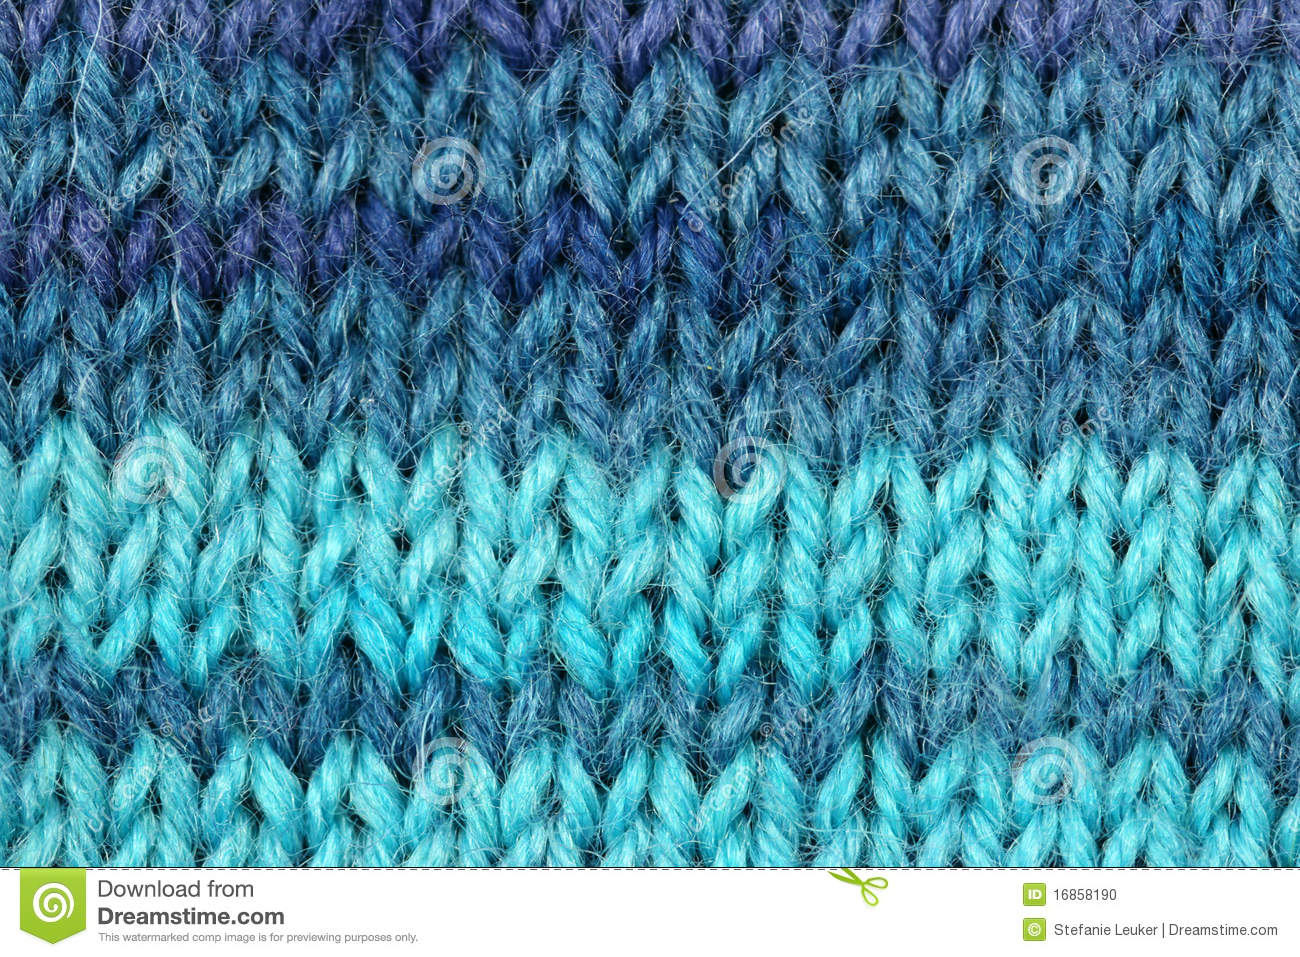 http://thumbs.dreamstime.com/z/knitted-wool-texture-16858190.jpg